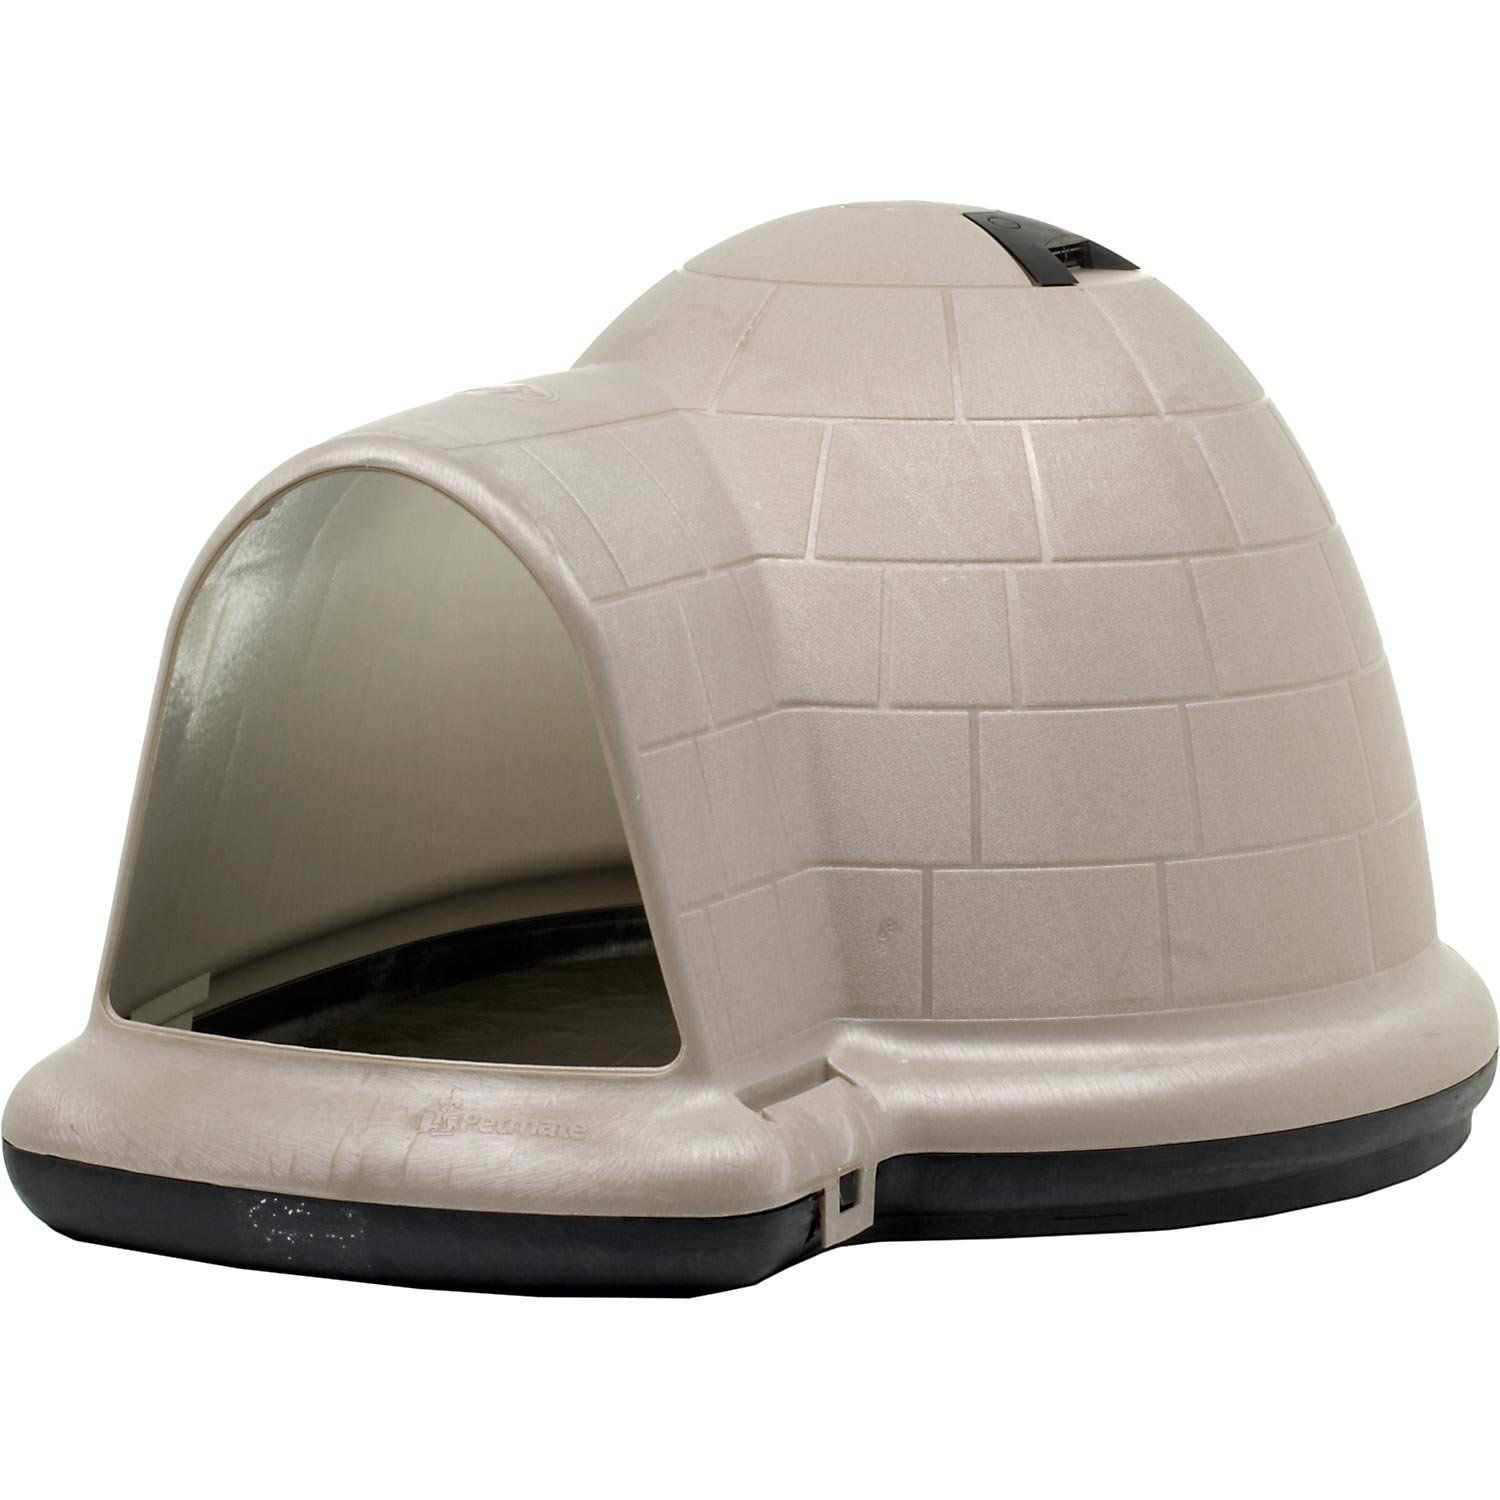 Provide Security Comfort For Your Dog With Petco S Petmate